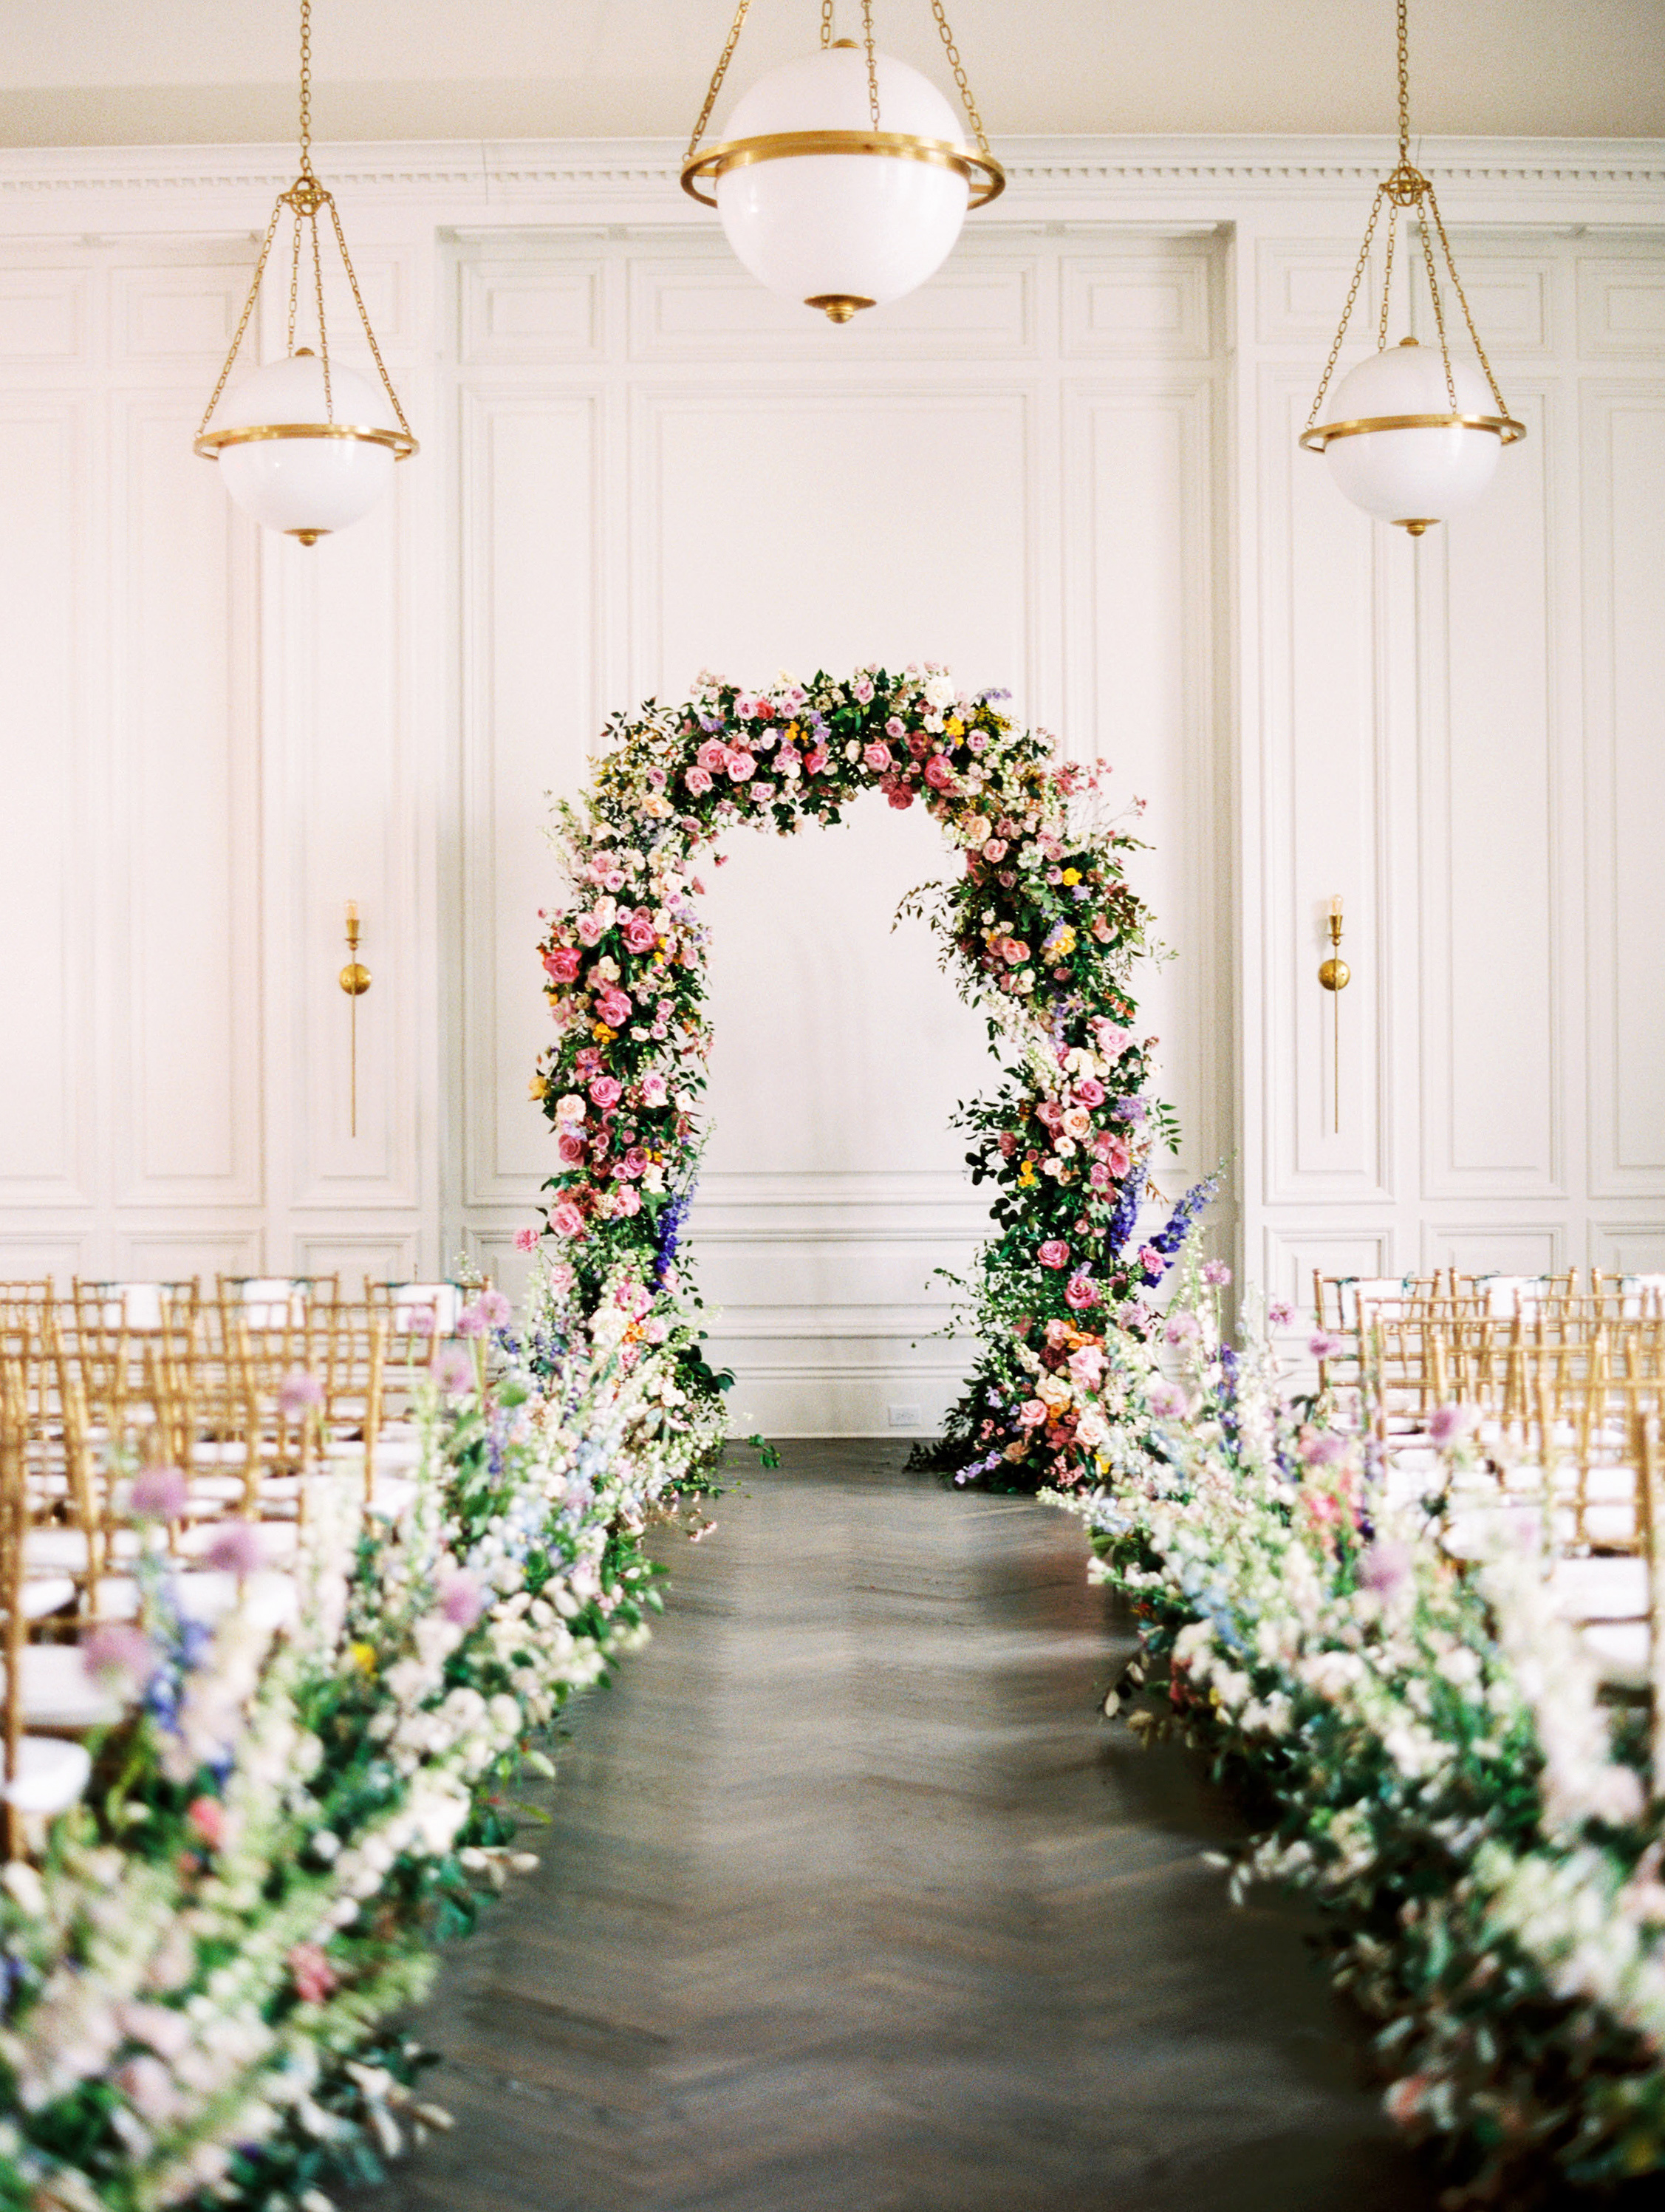 stephanie joe wedding floral ceremony arch